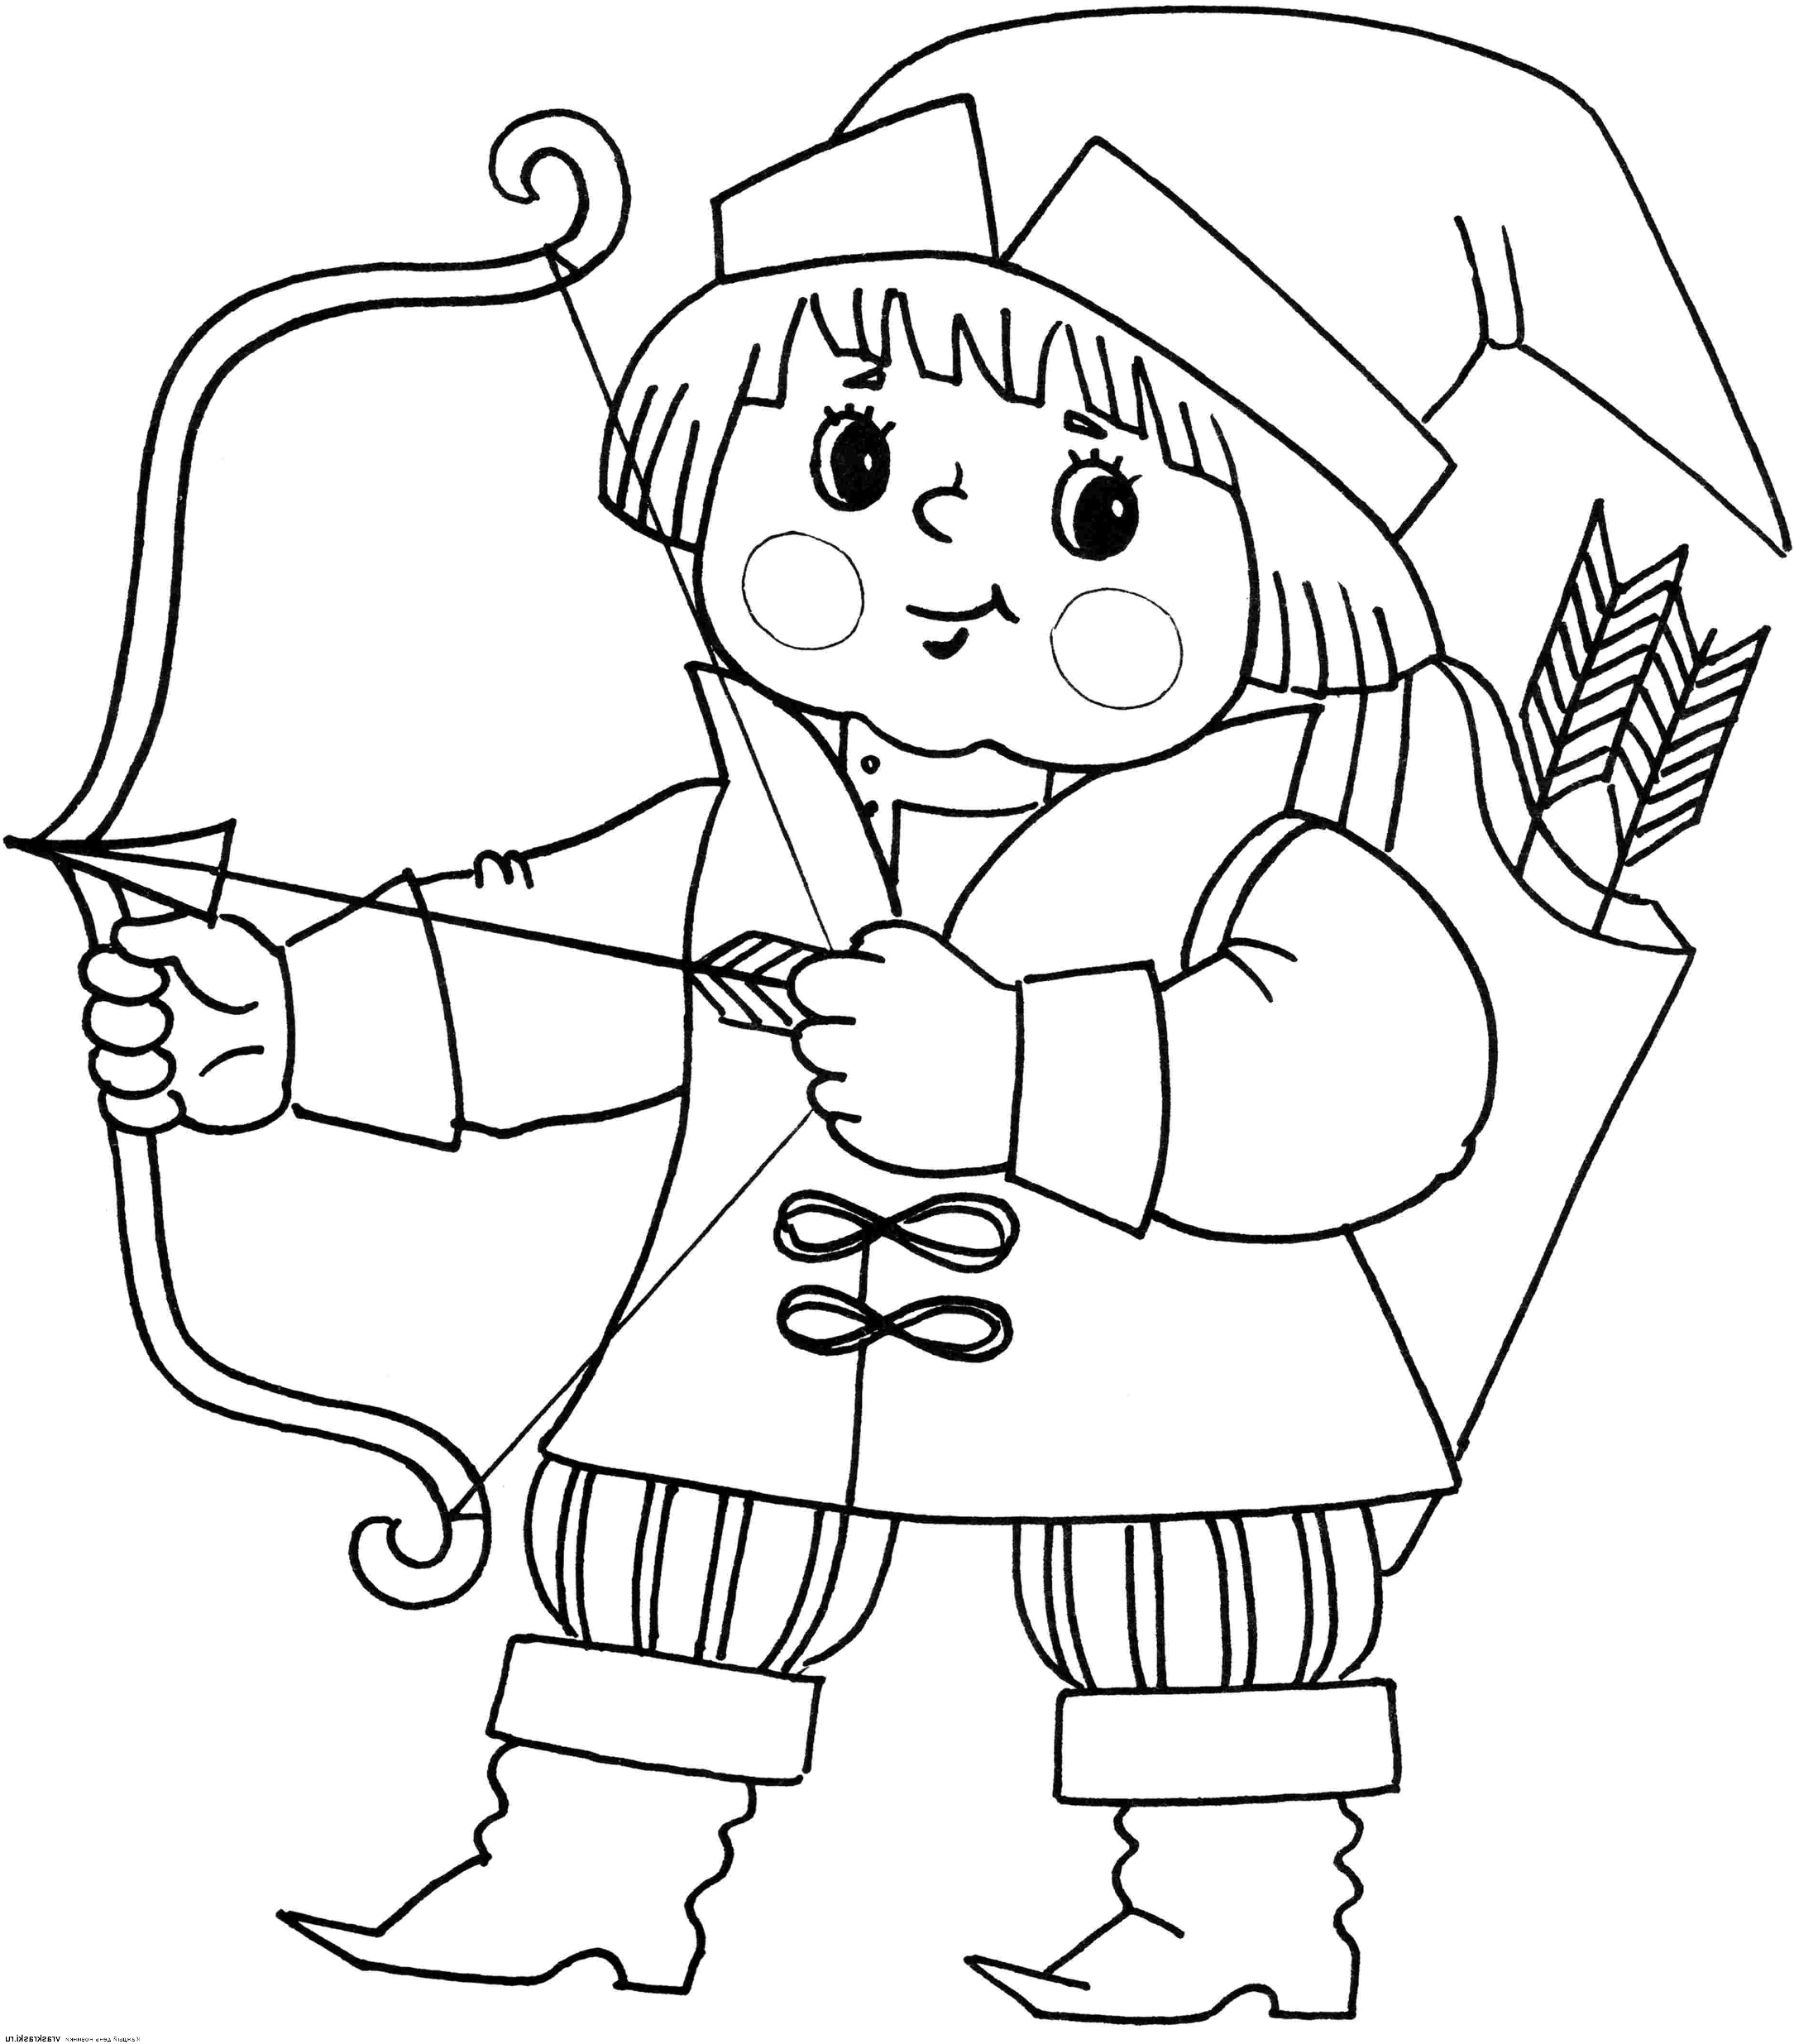 Clown Coloring Pages Activities Coloring Pages